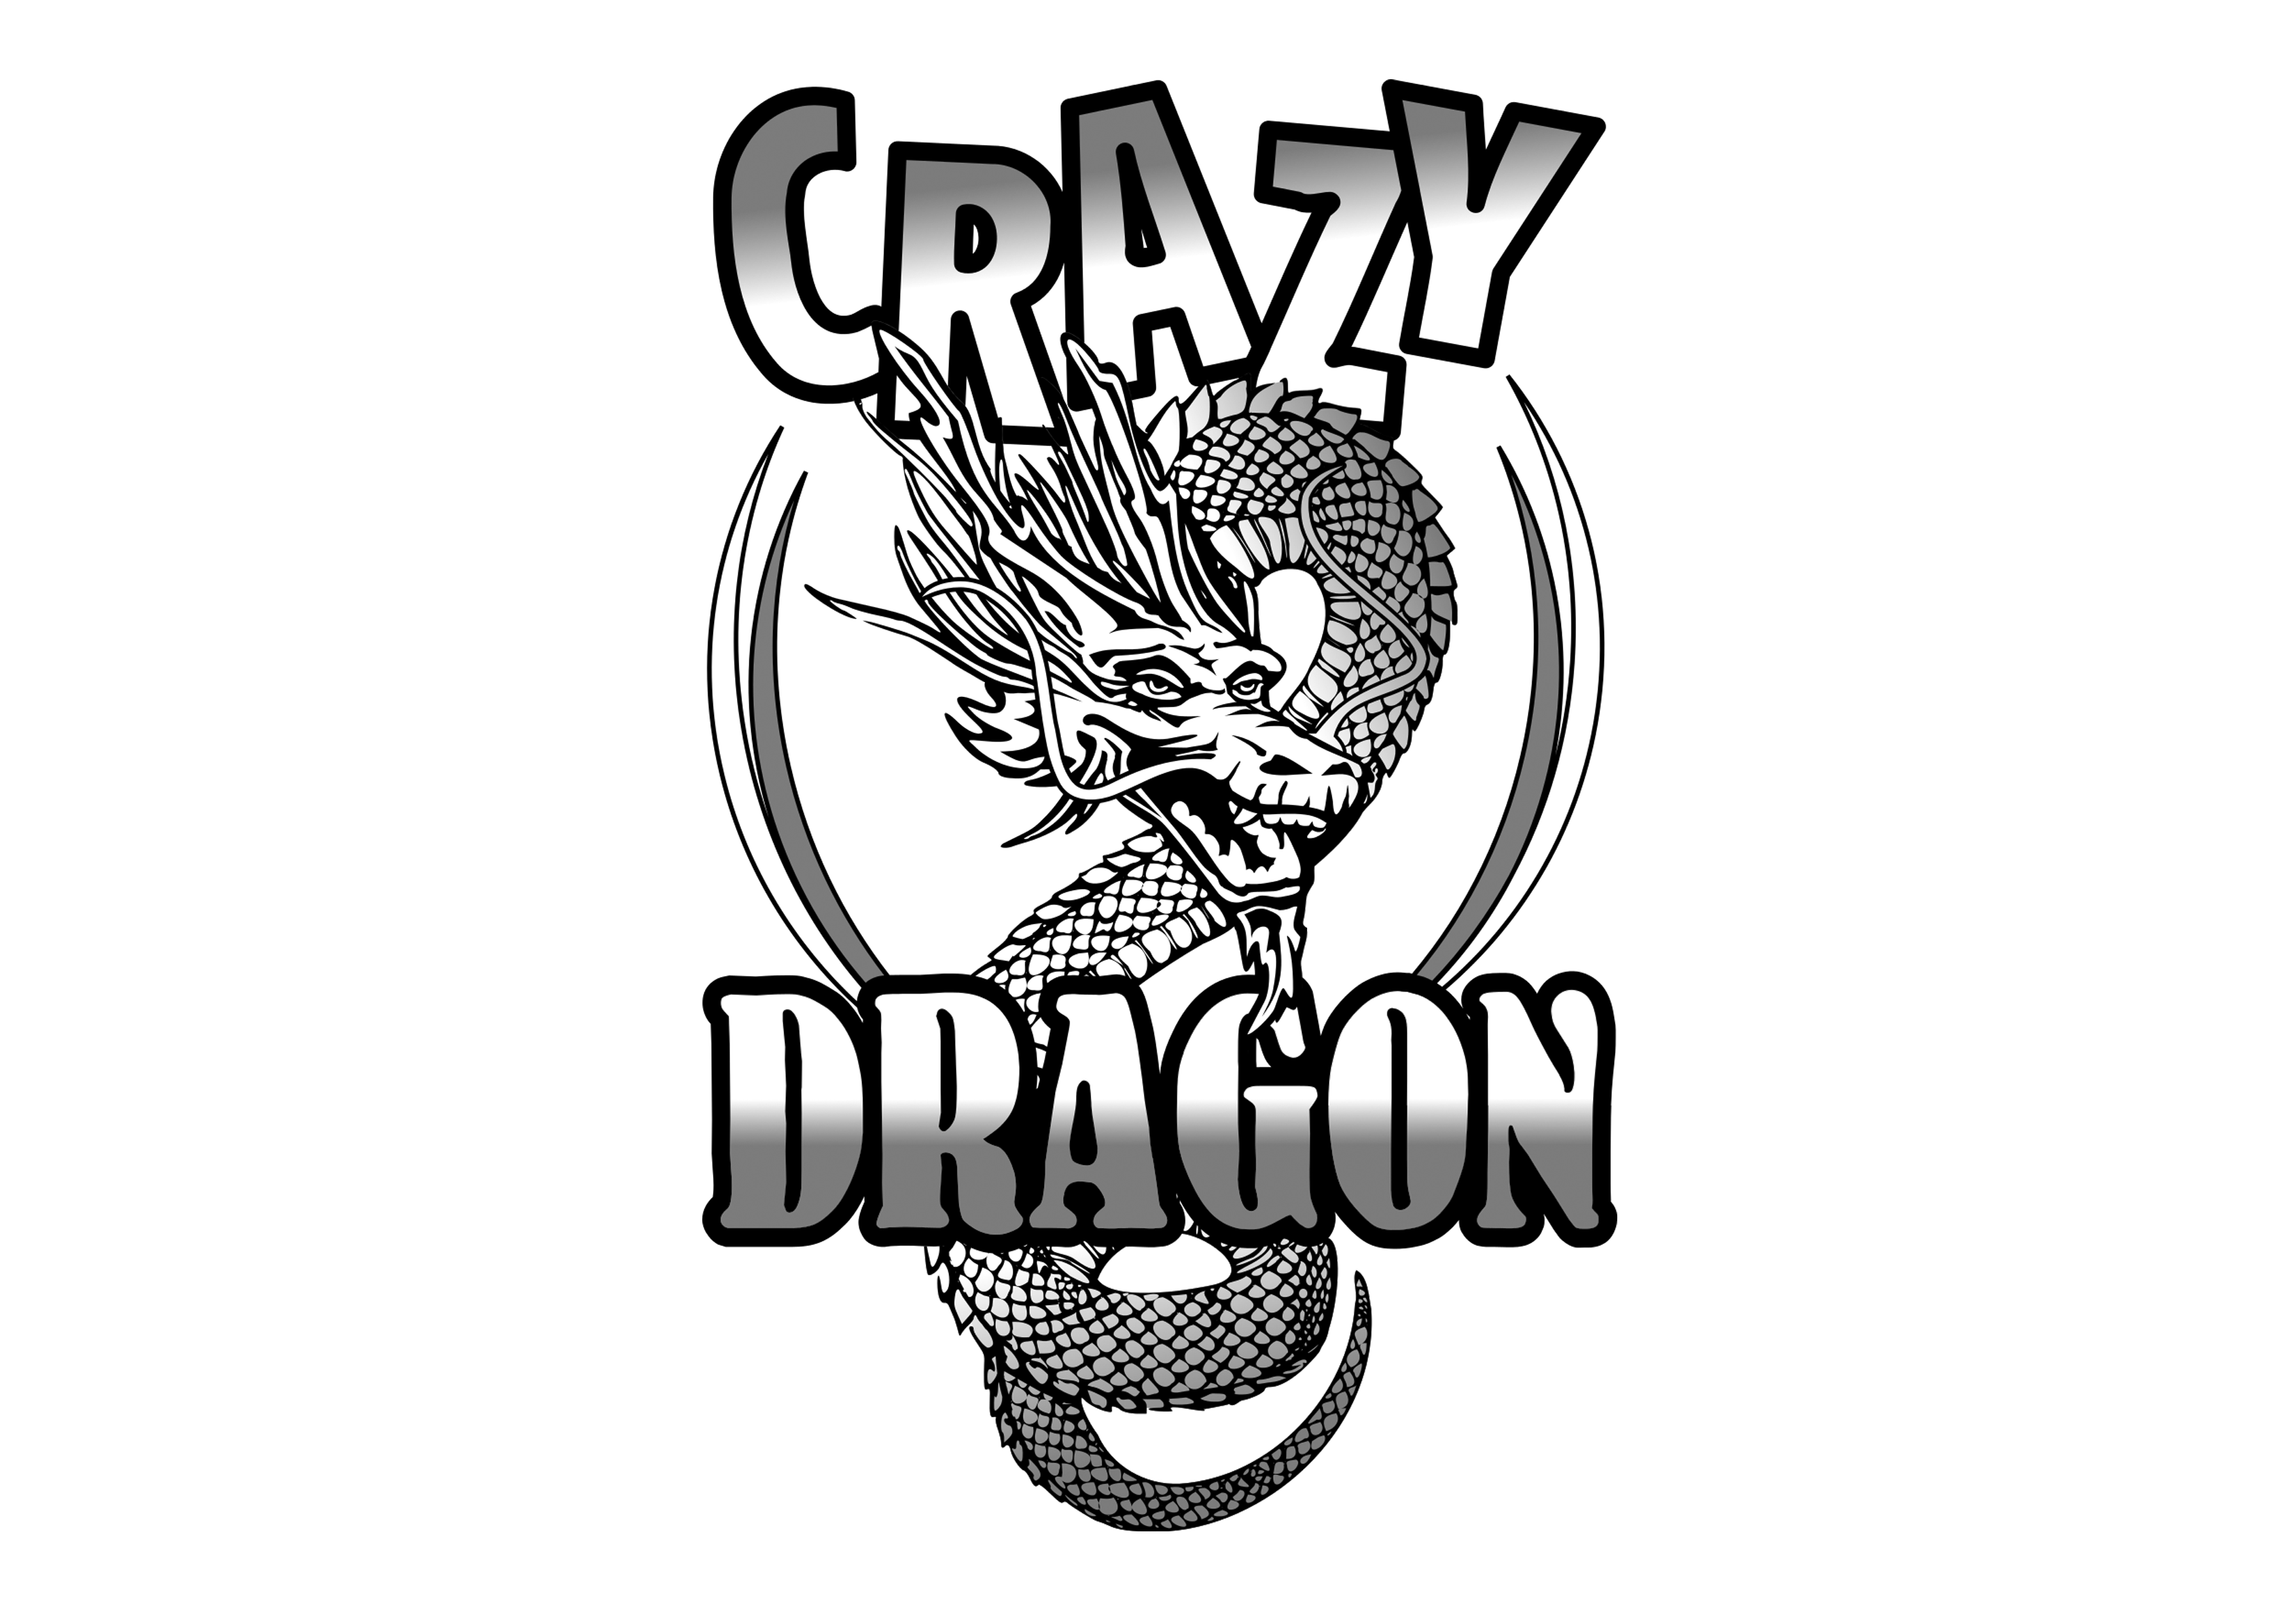 crazydragon